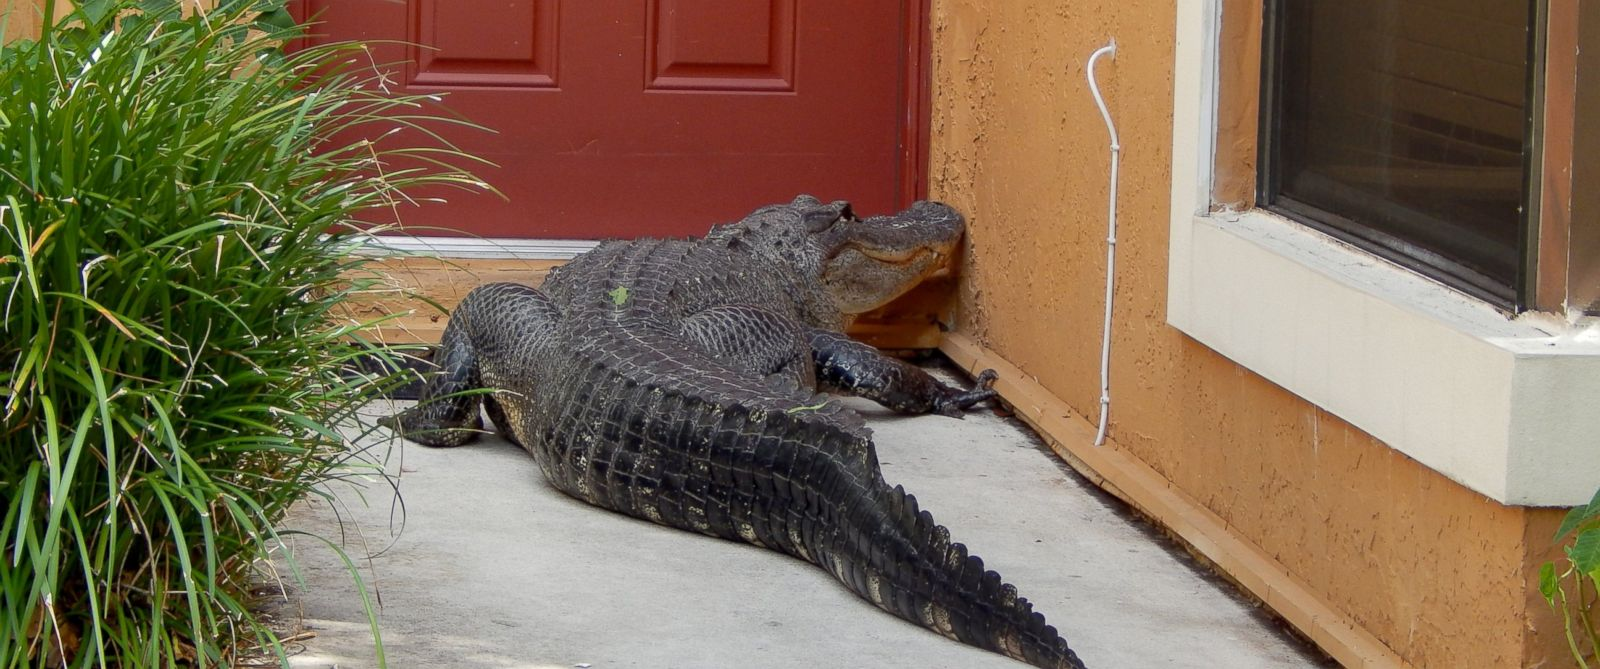 Miami Man And Dog Find Giant Alligator On Front Doorstep